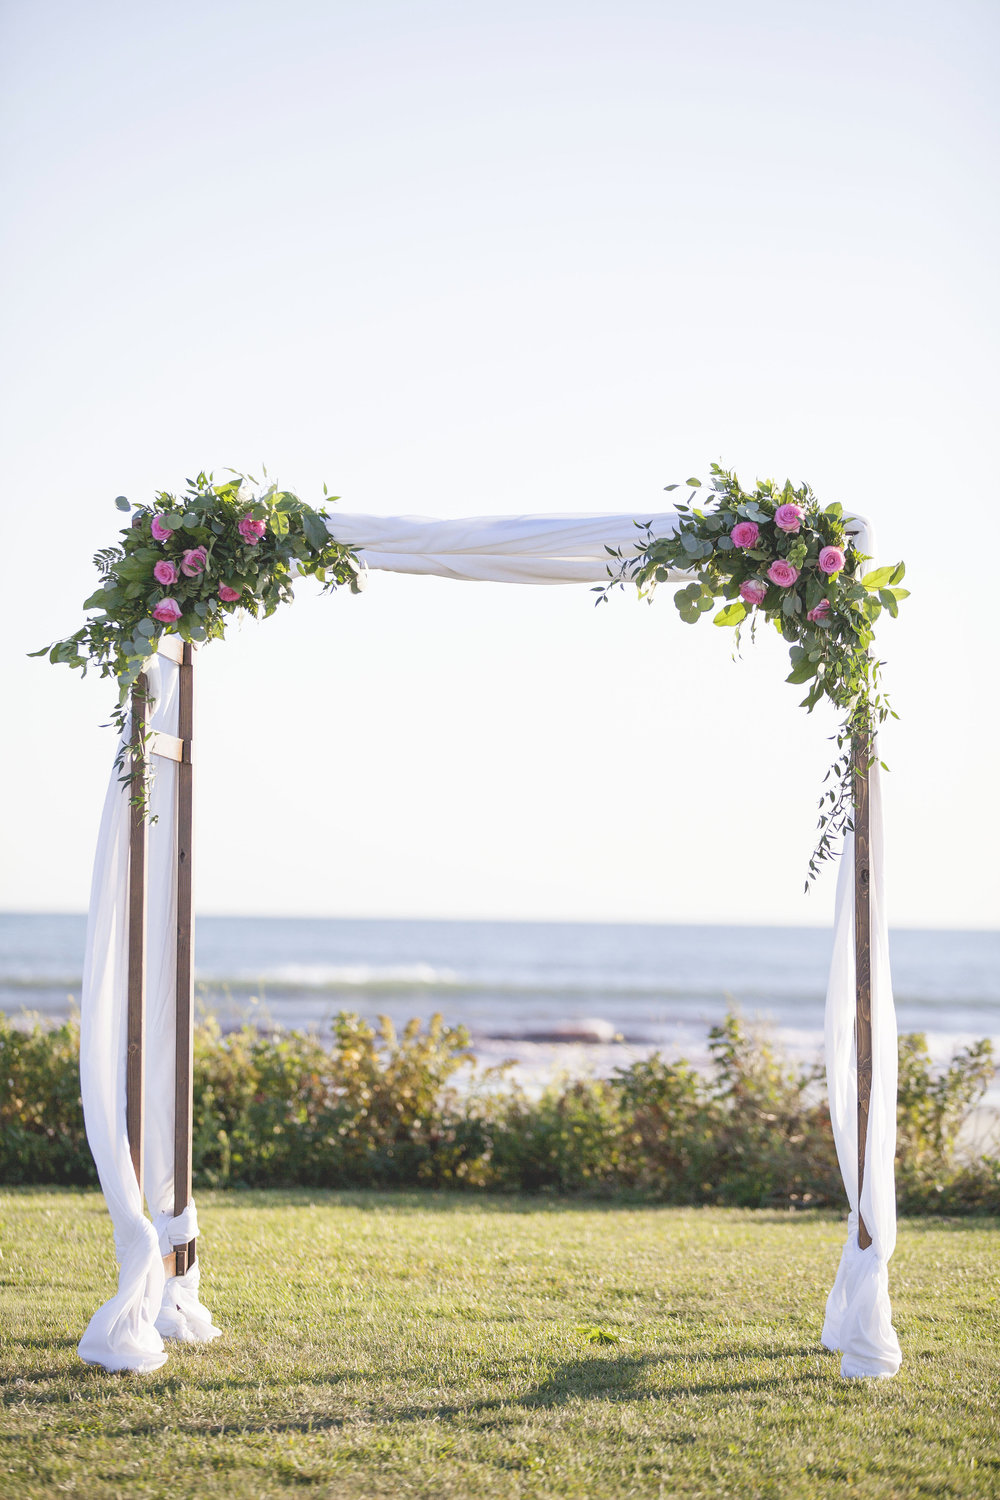 Ashley and Chuck | Atlantic Beach Club, Newport RI Event Design: www.champagneandink.com Photo: Joseph Laurin Photography | http://www.joelaurinphotography.com/  #newportri #newportwedding #champagneandink #joelaurin    #bride #groom #pinkandnavy #beachwedding #wedding #weddingdress #weddingaltar #pinkroses #chuppah